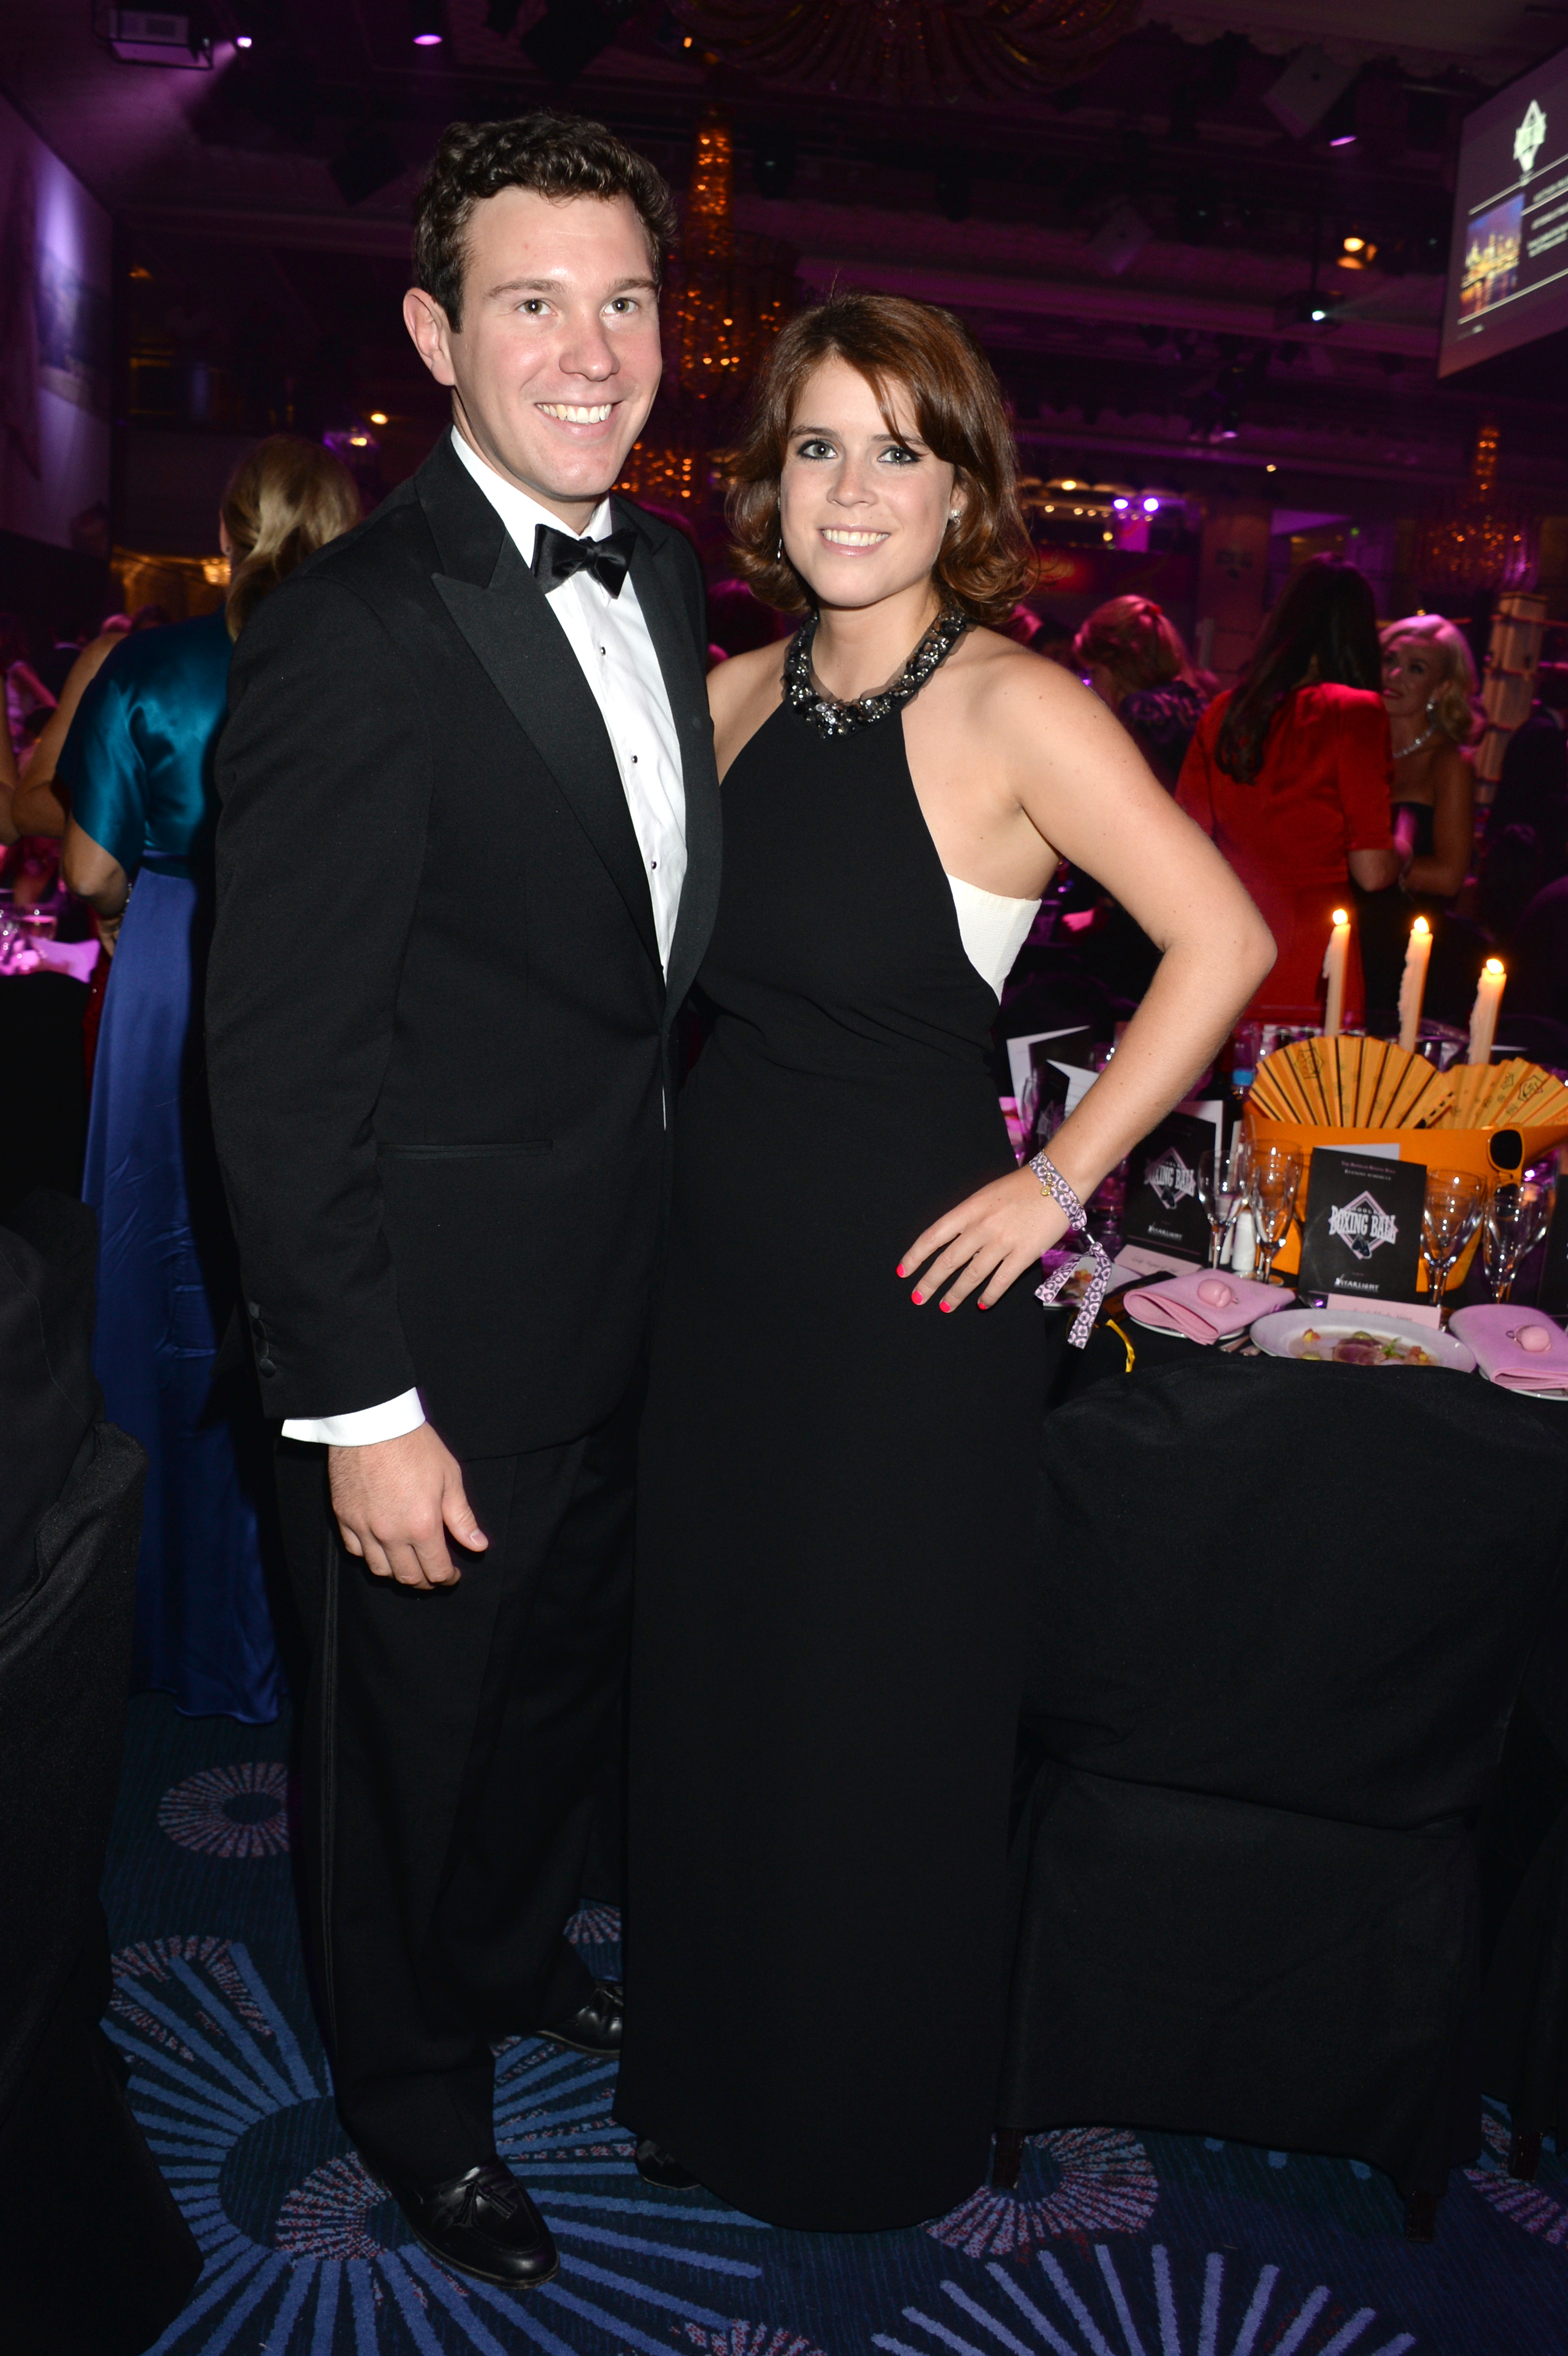 In this handout image provided by the Boodles Boxing Ball Committee, Jack Brooksbank and Princess Eugenie of York pose at the Boodles Boxing Ball 2013 on September 21, 2013, at the Grosvenor House in London, England.